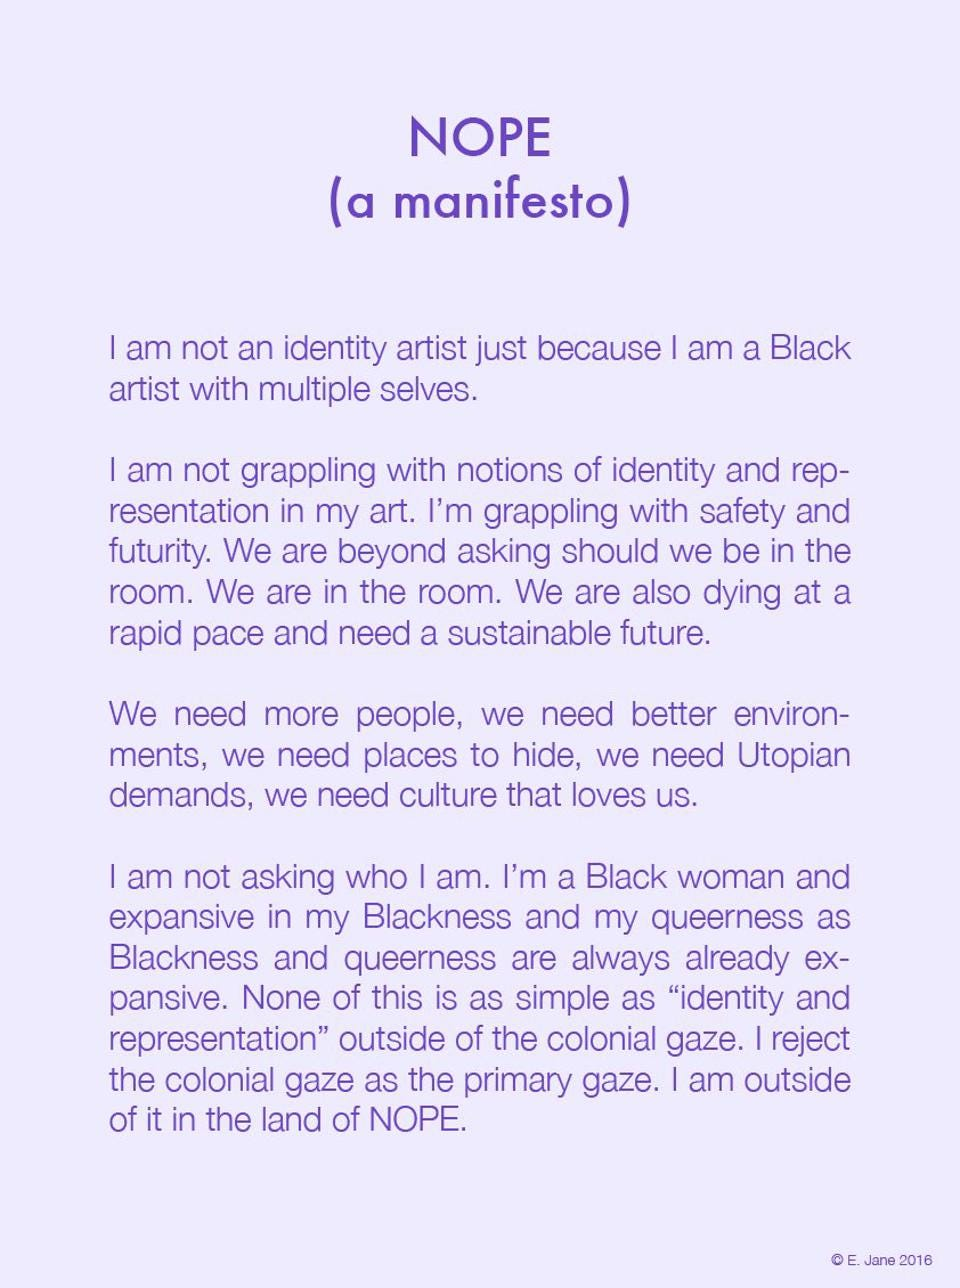 E. Jane is a digital artist featured in Glitch Feminism by Legacy Russell